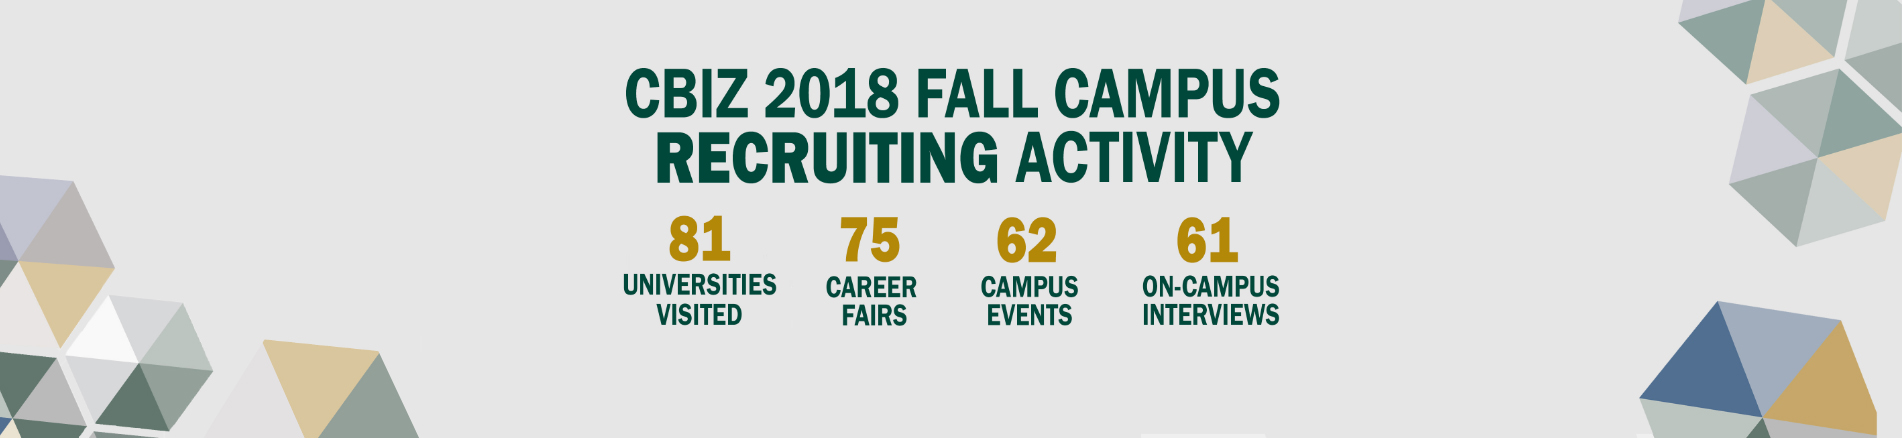 Fall 2018 CBIZ Activity